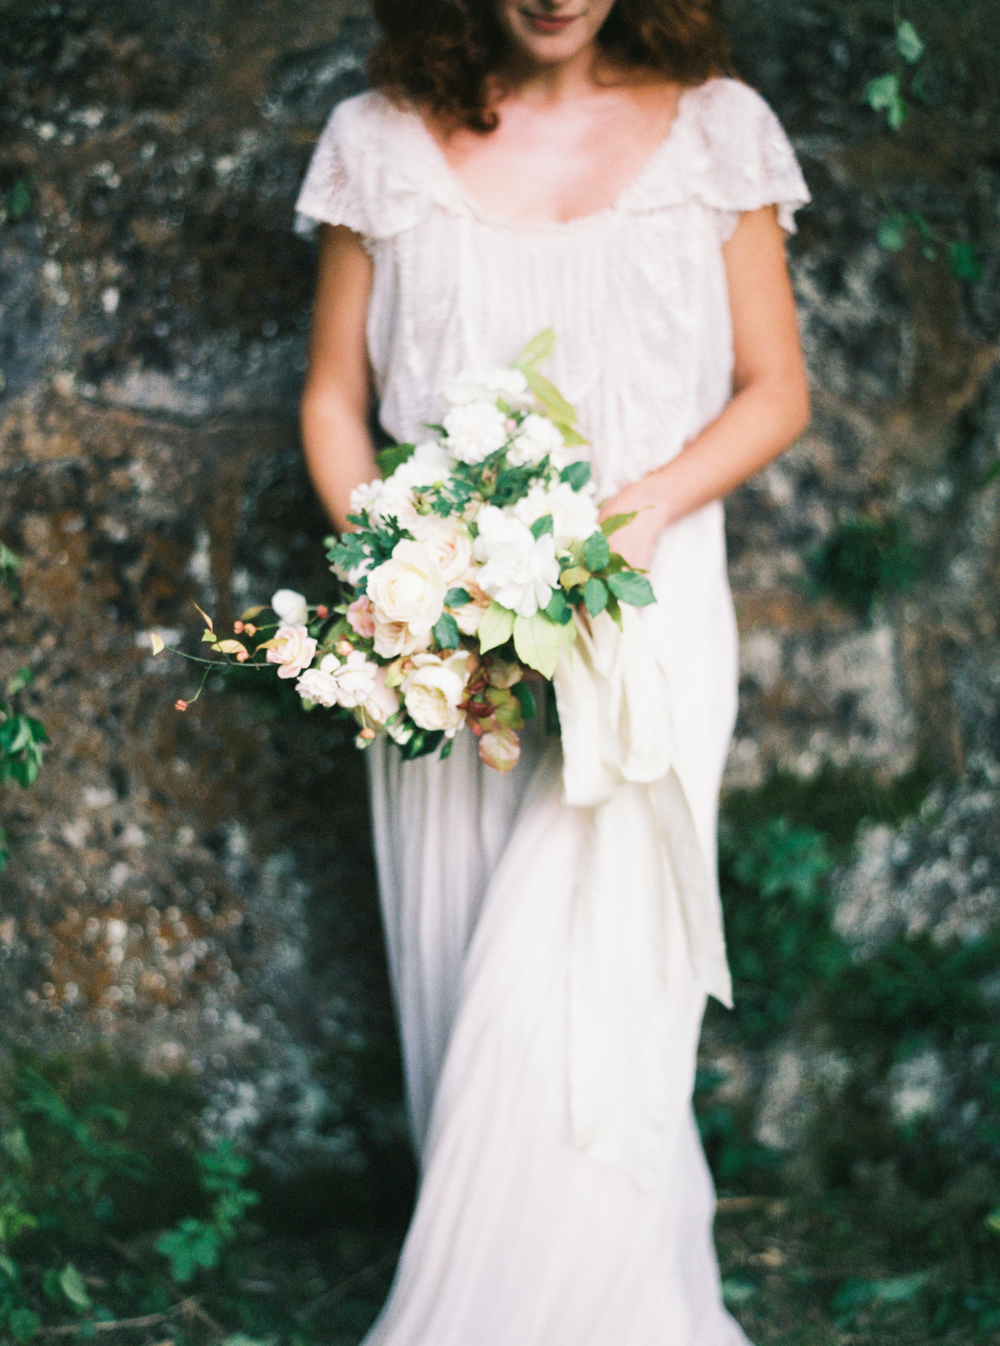 Photo by Tamara Gigola. European Workshop by Ginny Au. Inspirational bridal shoot. Flowers by Sara Winward, dress by Gossamer Vintage.